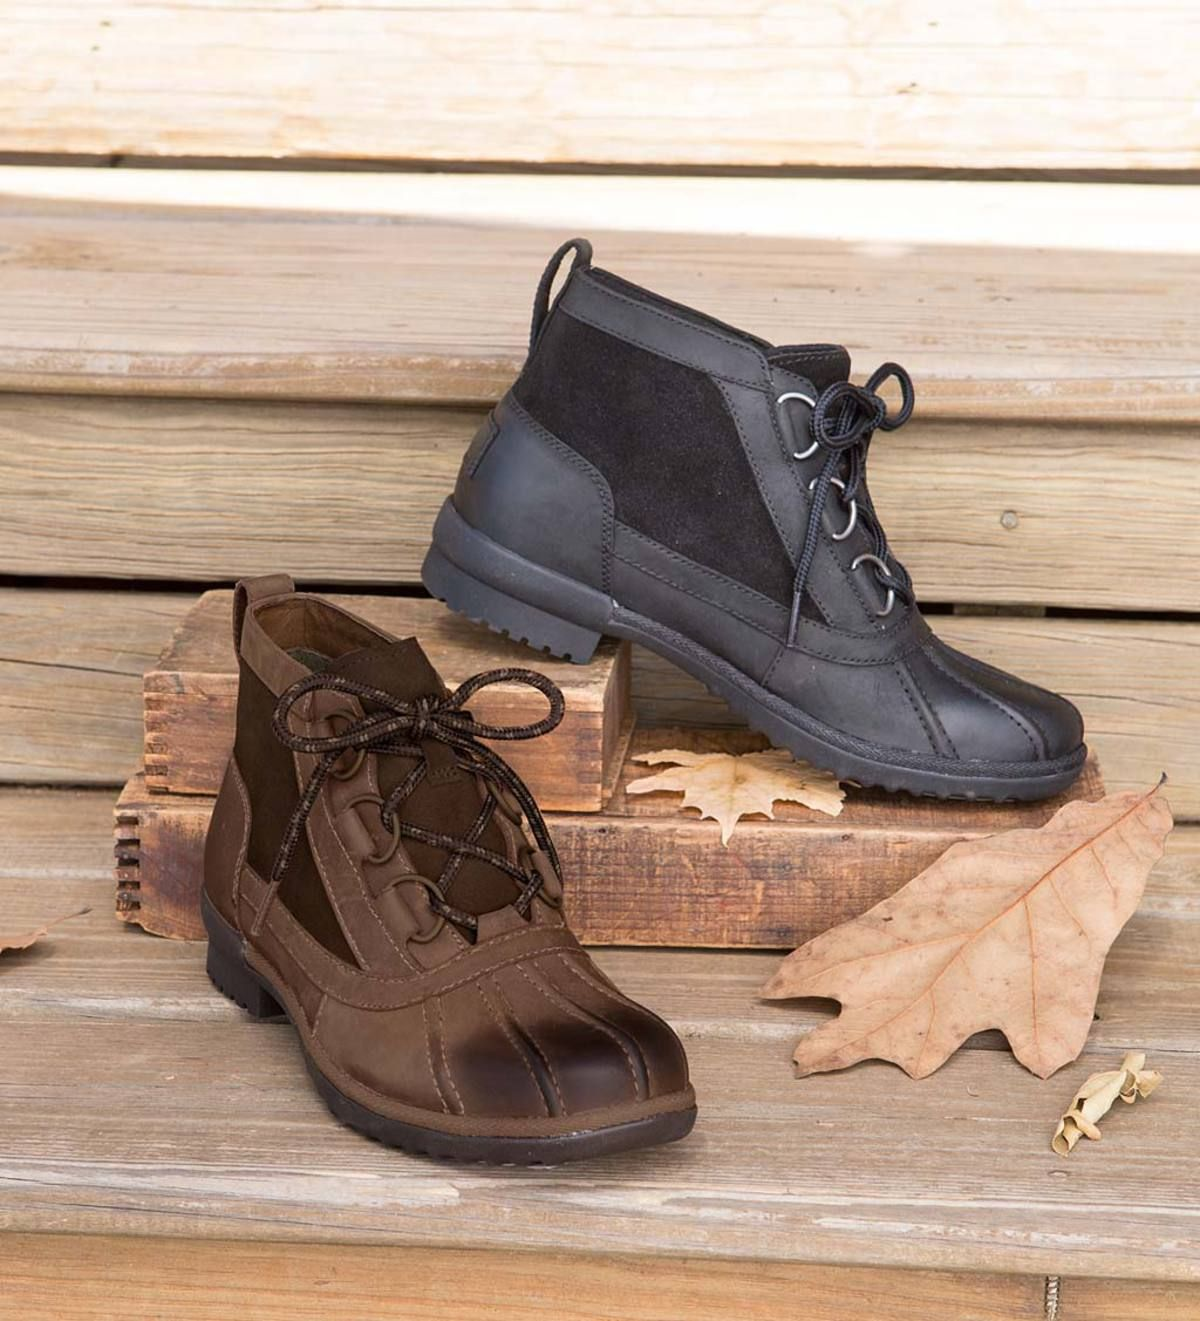 66cb7837e47 Go anywhere and be ready for anything with UGG Heather Boots. The ...